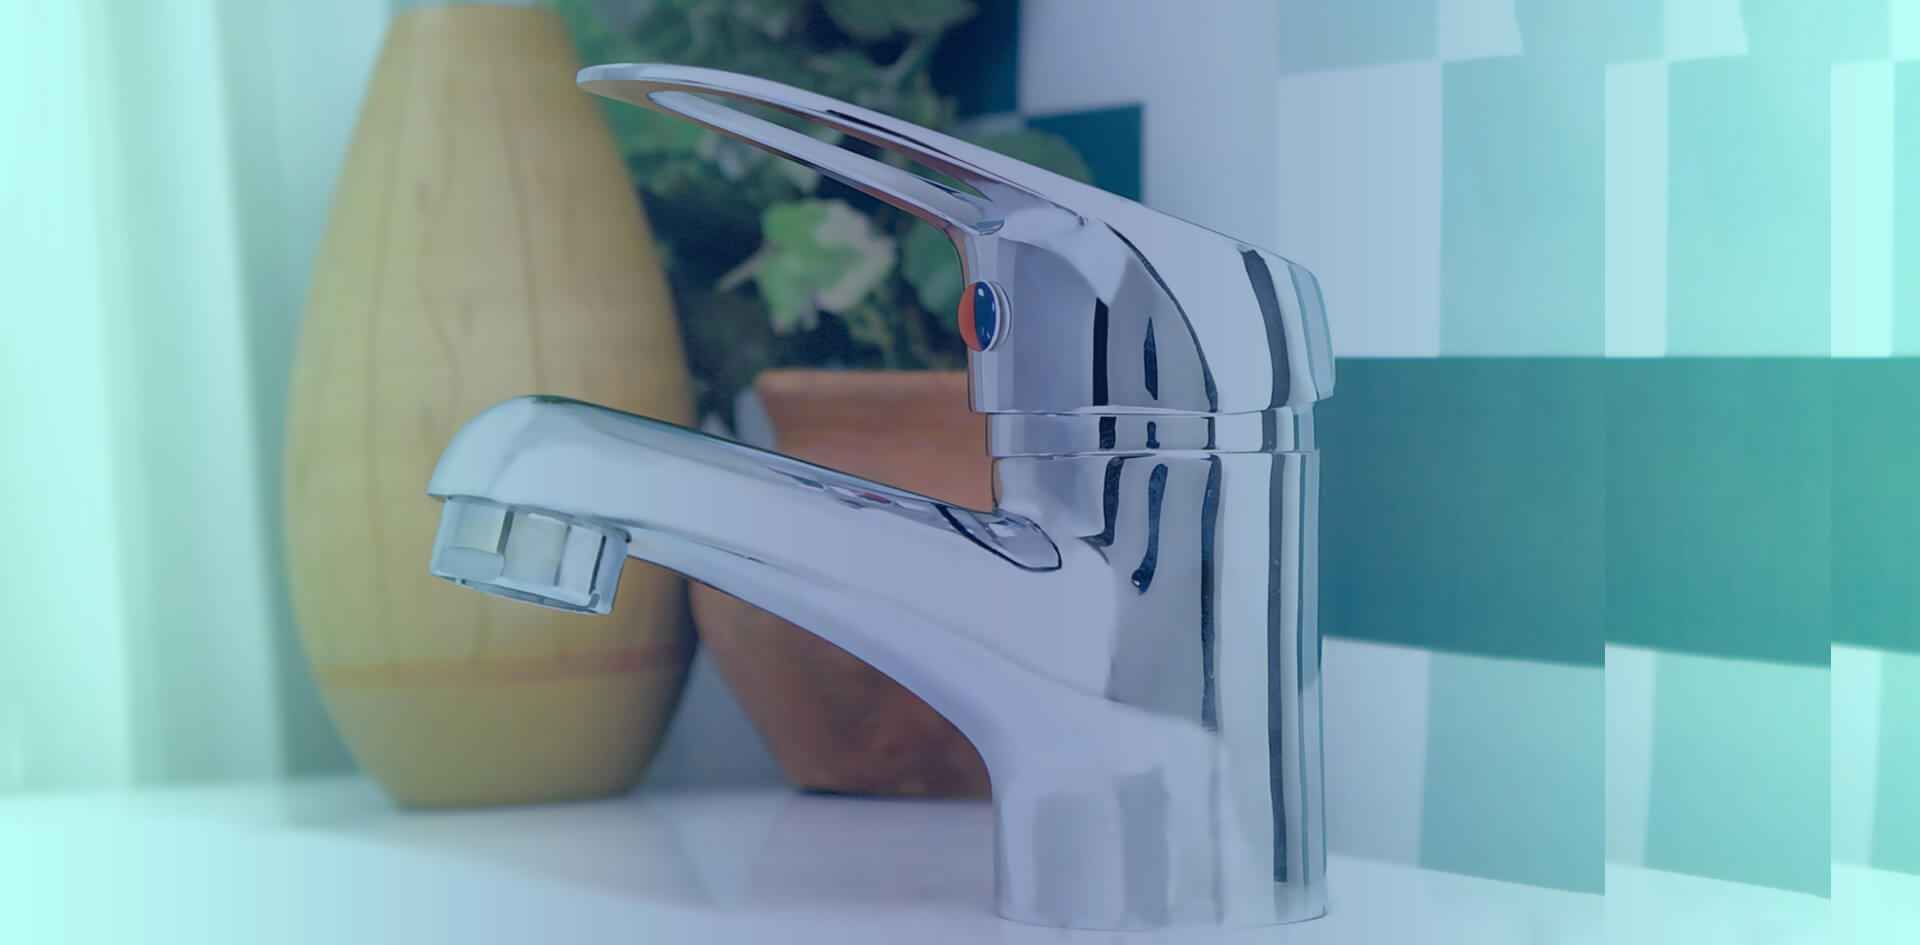 Bathroom fitting suppliers - Bathroom Fitting Manufacturer And Suppliers Regalbath Manufacturing Wide Range Of Bathroom Accessories We Provide A